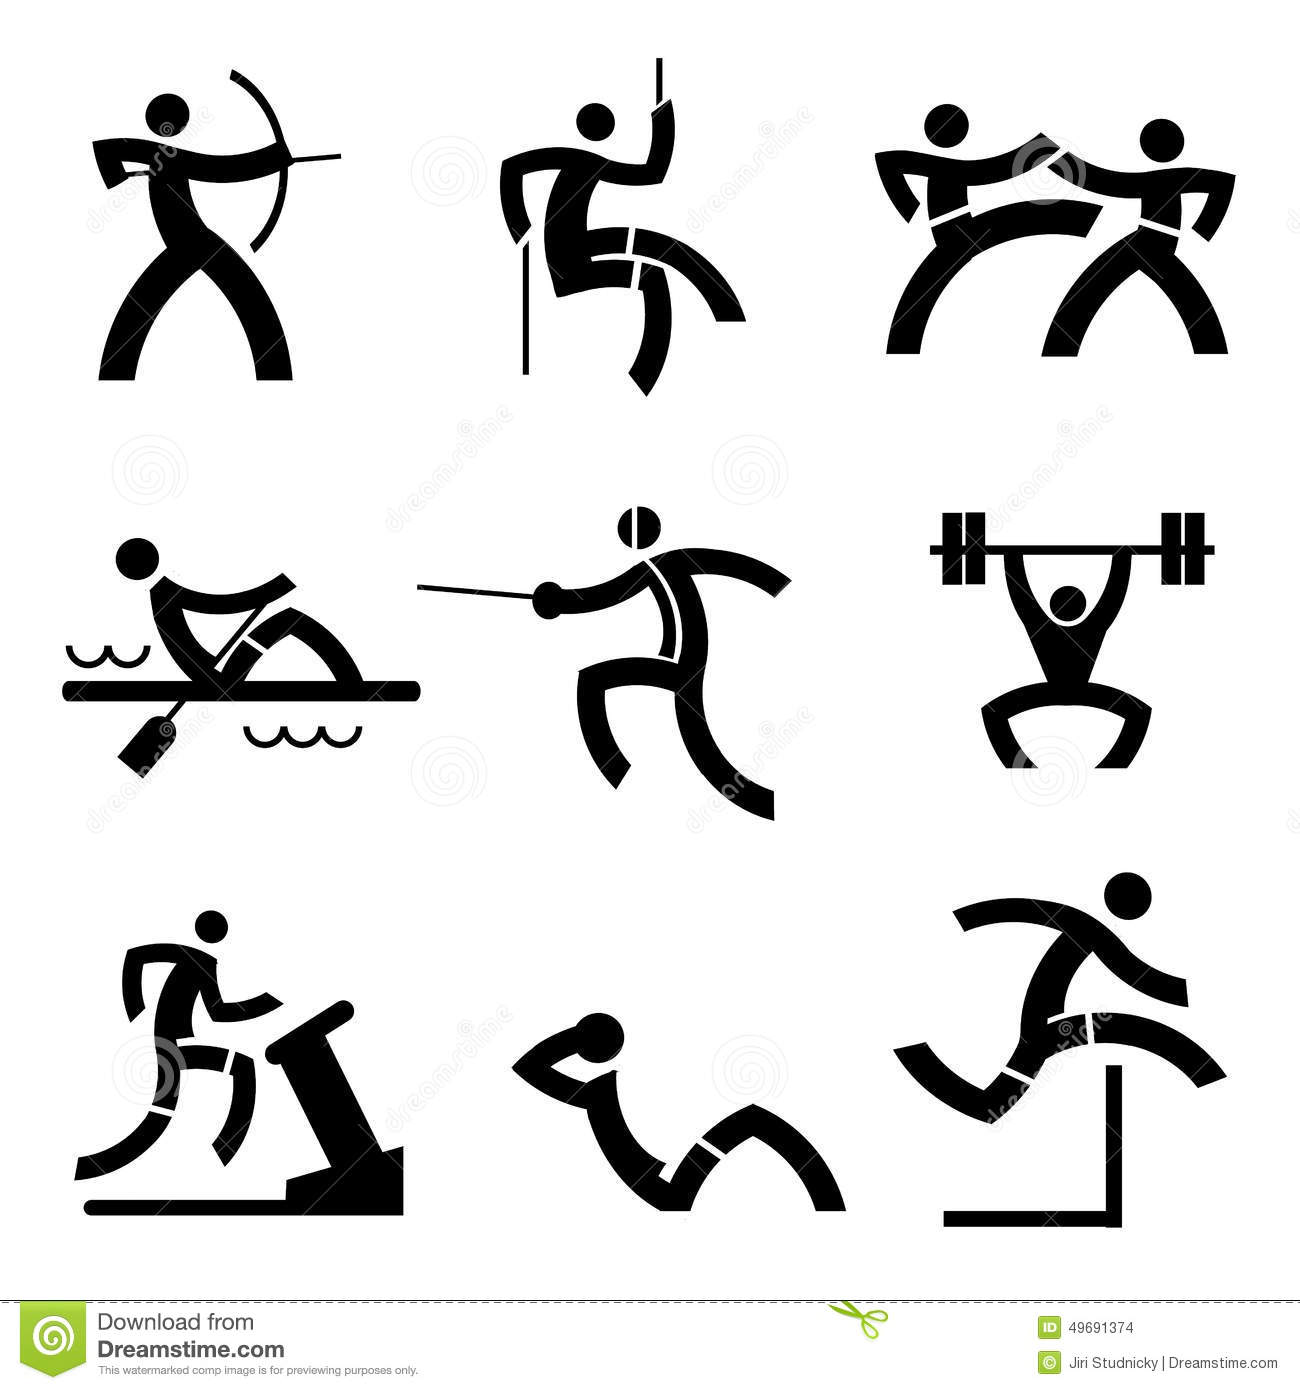 Black icons with sport and fitness activities. Vector illustration.